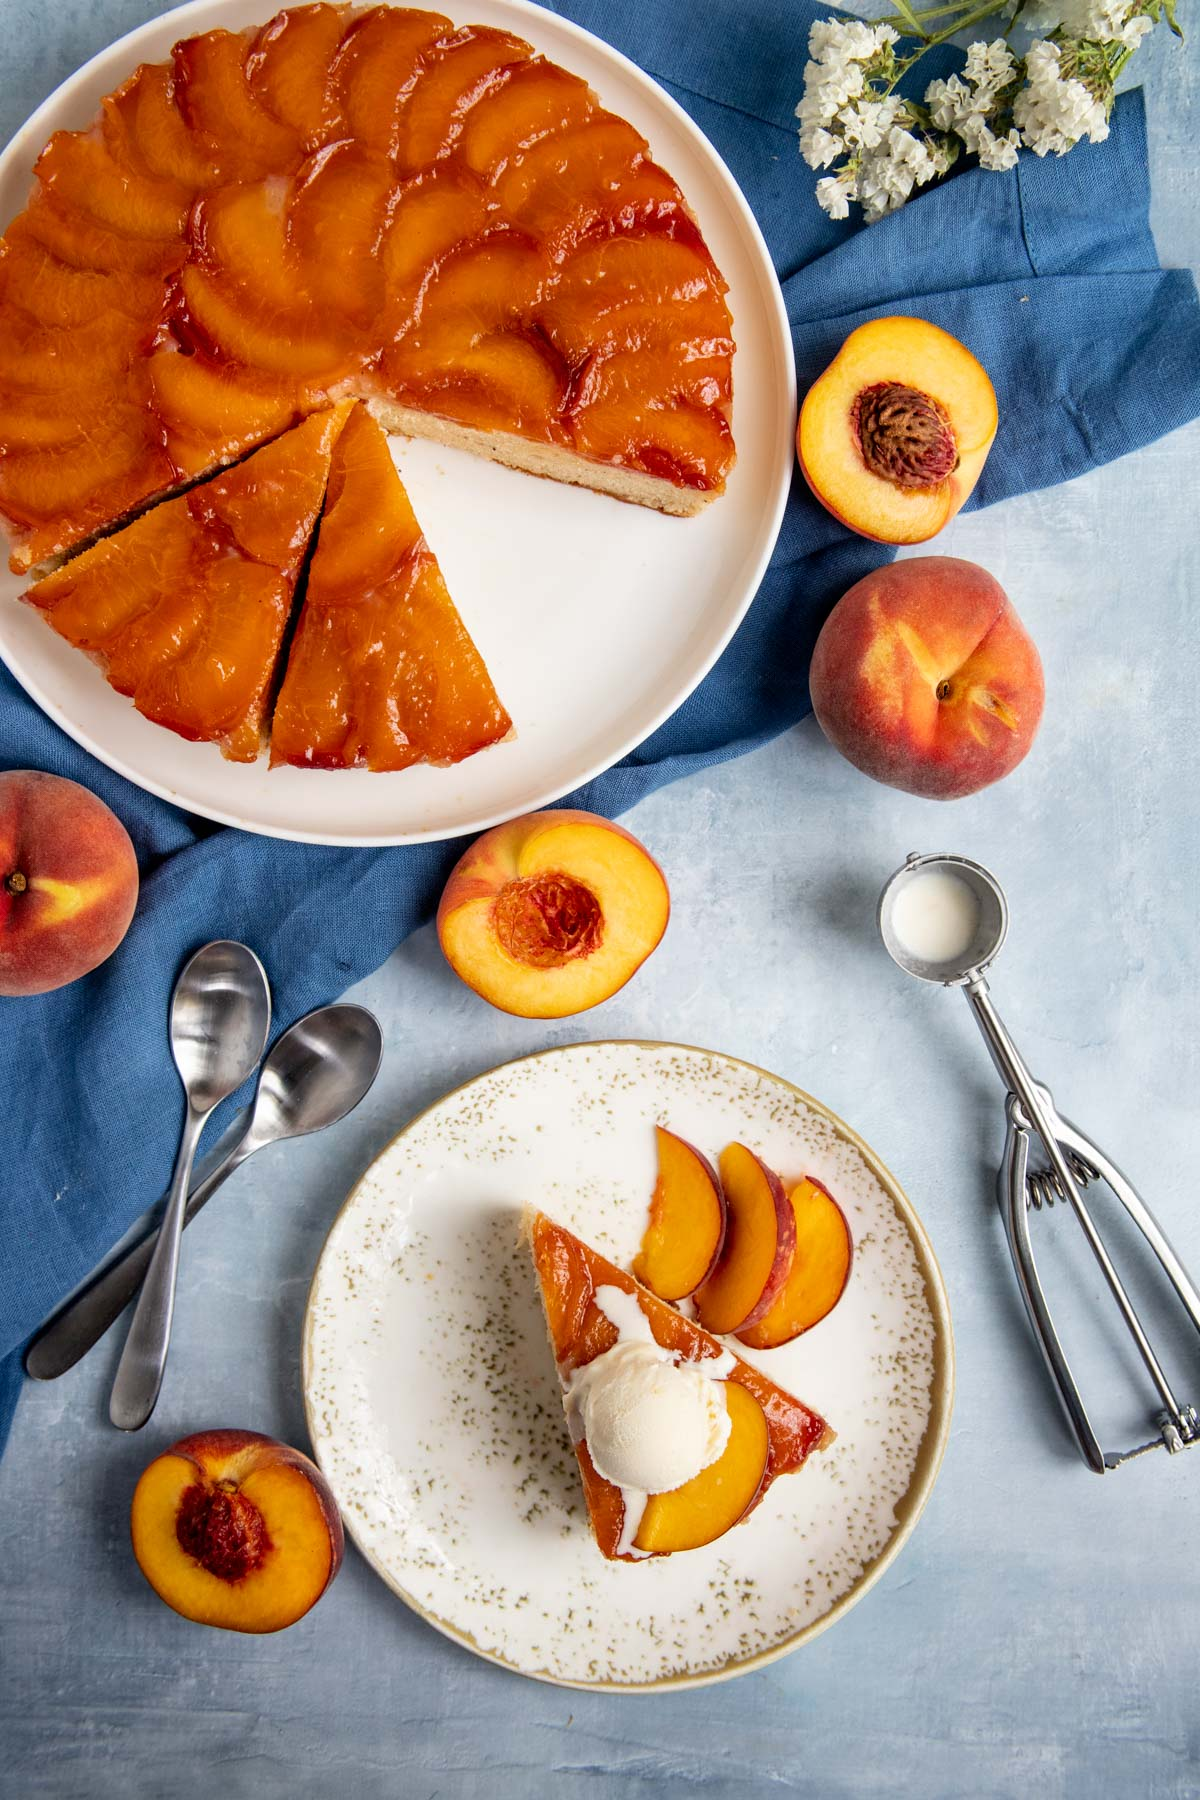 Peach Bourbon Upside Down Cake on a platter next to a slice of cake topped with ice cream.